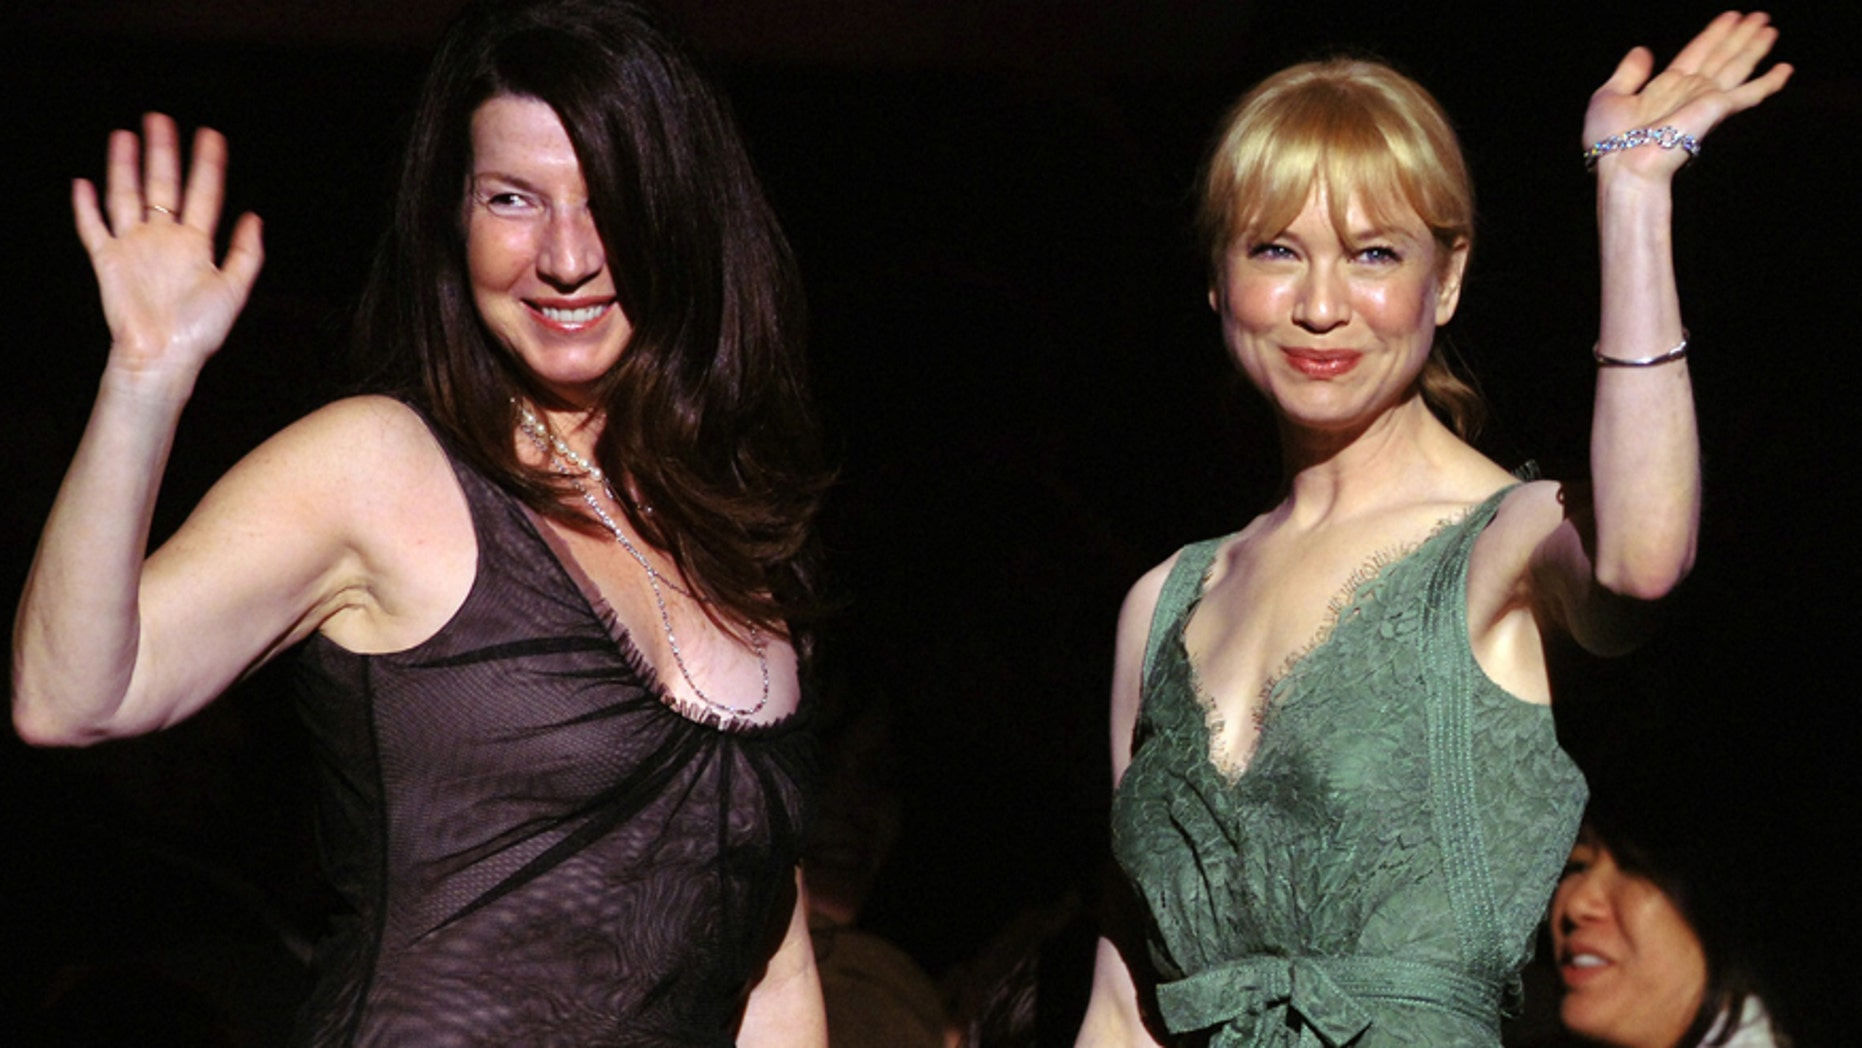 """Actress Rene Zellweger, right, and publicist Nanci Ryder wave after they are acknowledged by the audience at the start of """"What A Pair! 3,"""" a concert of songs from Broadway musicals performed by duets of famous women, to benefit the Friends of the Breast Program at the University of California in Los Angles (UCLA) April 8, 2005."""